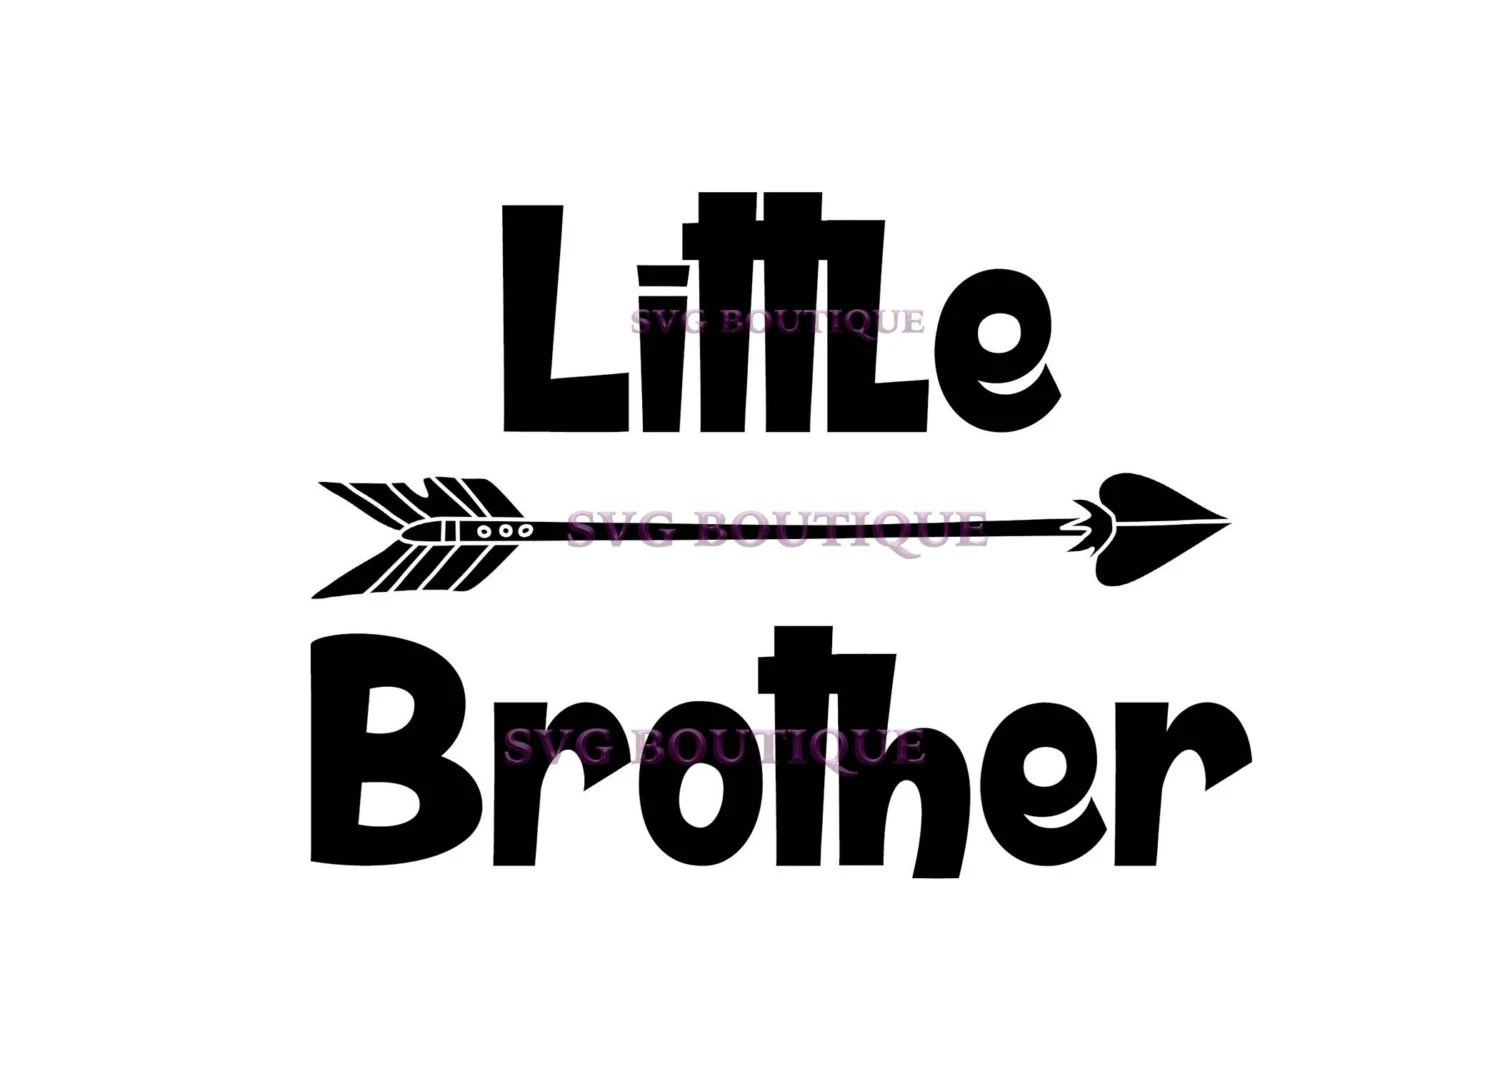 Little Brother Svg Big Brother Svg Arrow Vector Cutting